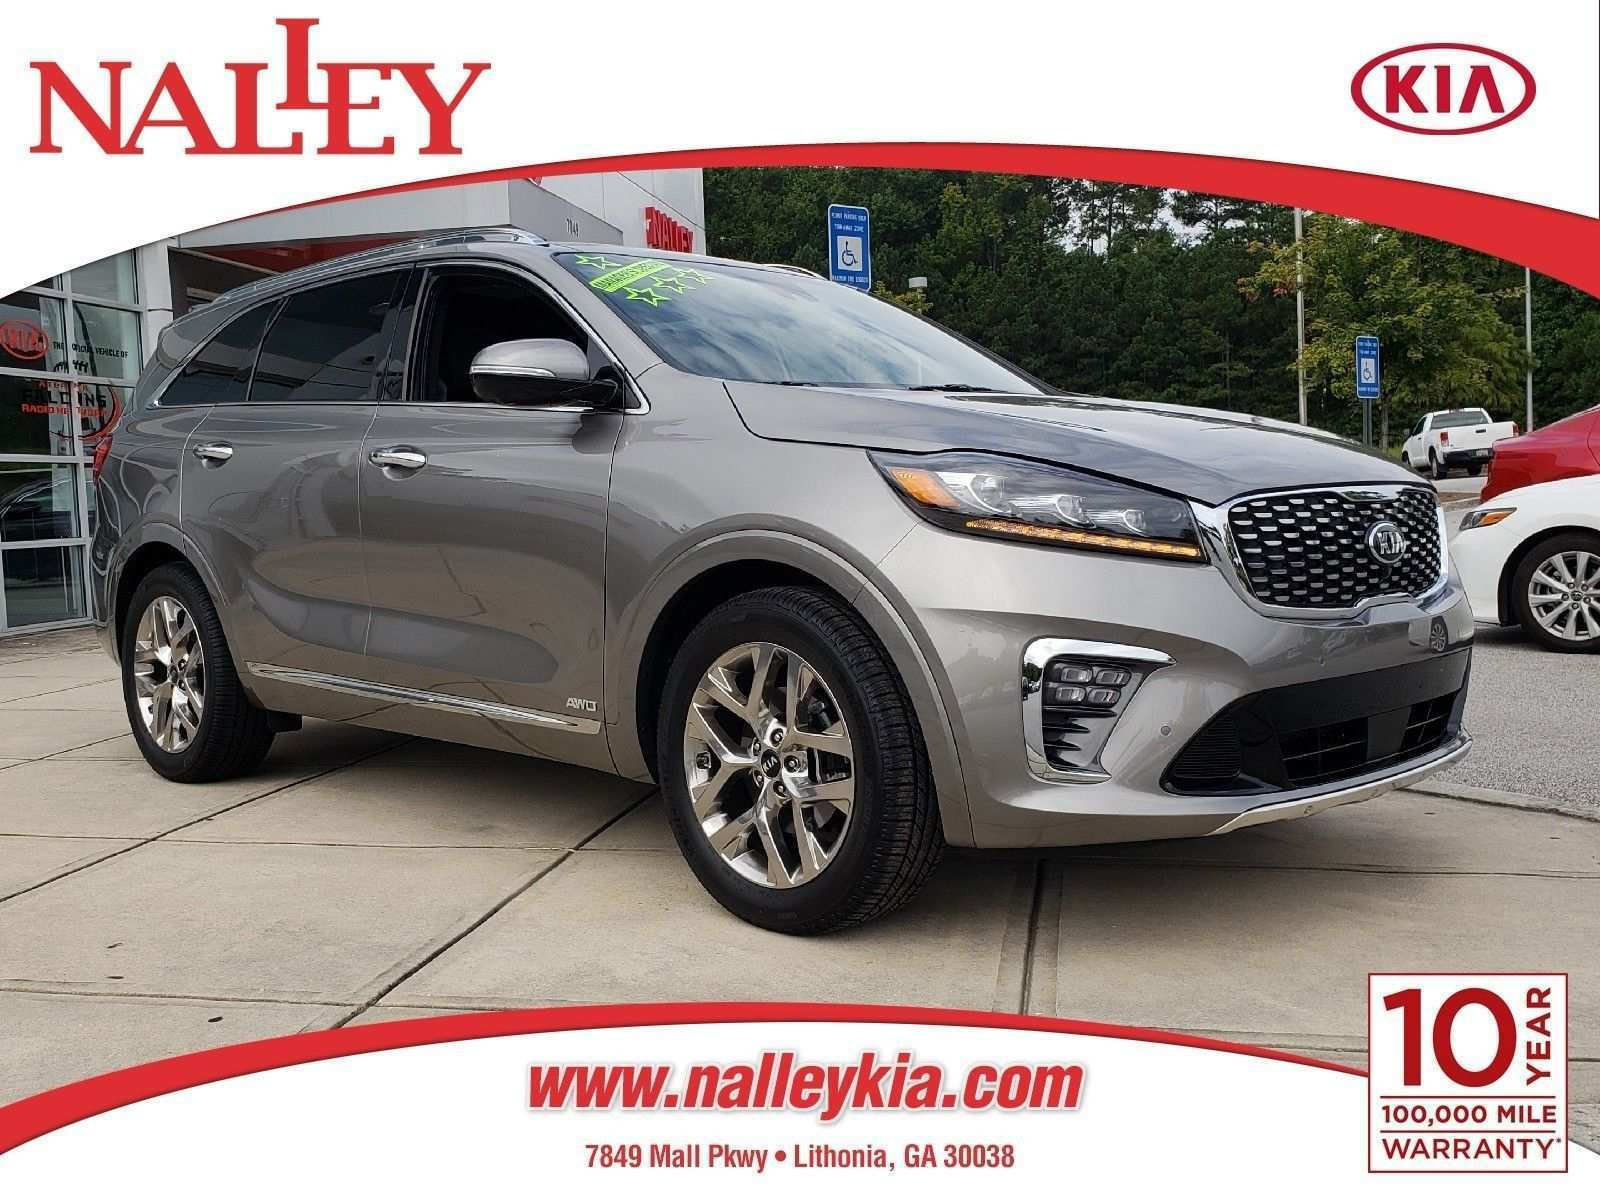 31 Concept of 2019 Kia Sorento Owners Manual New Review with 2019 Kia Sorento Owners Manual